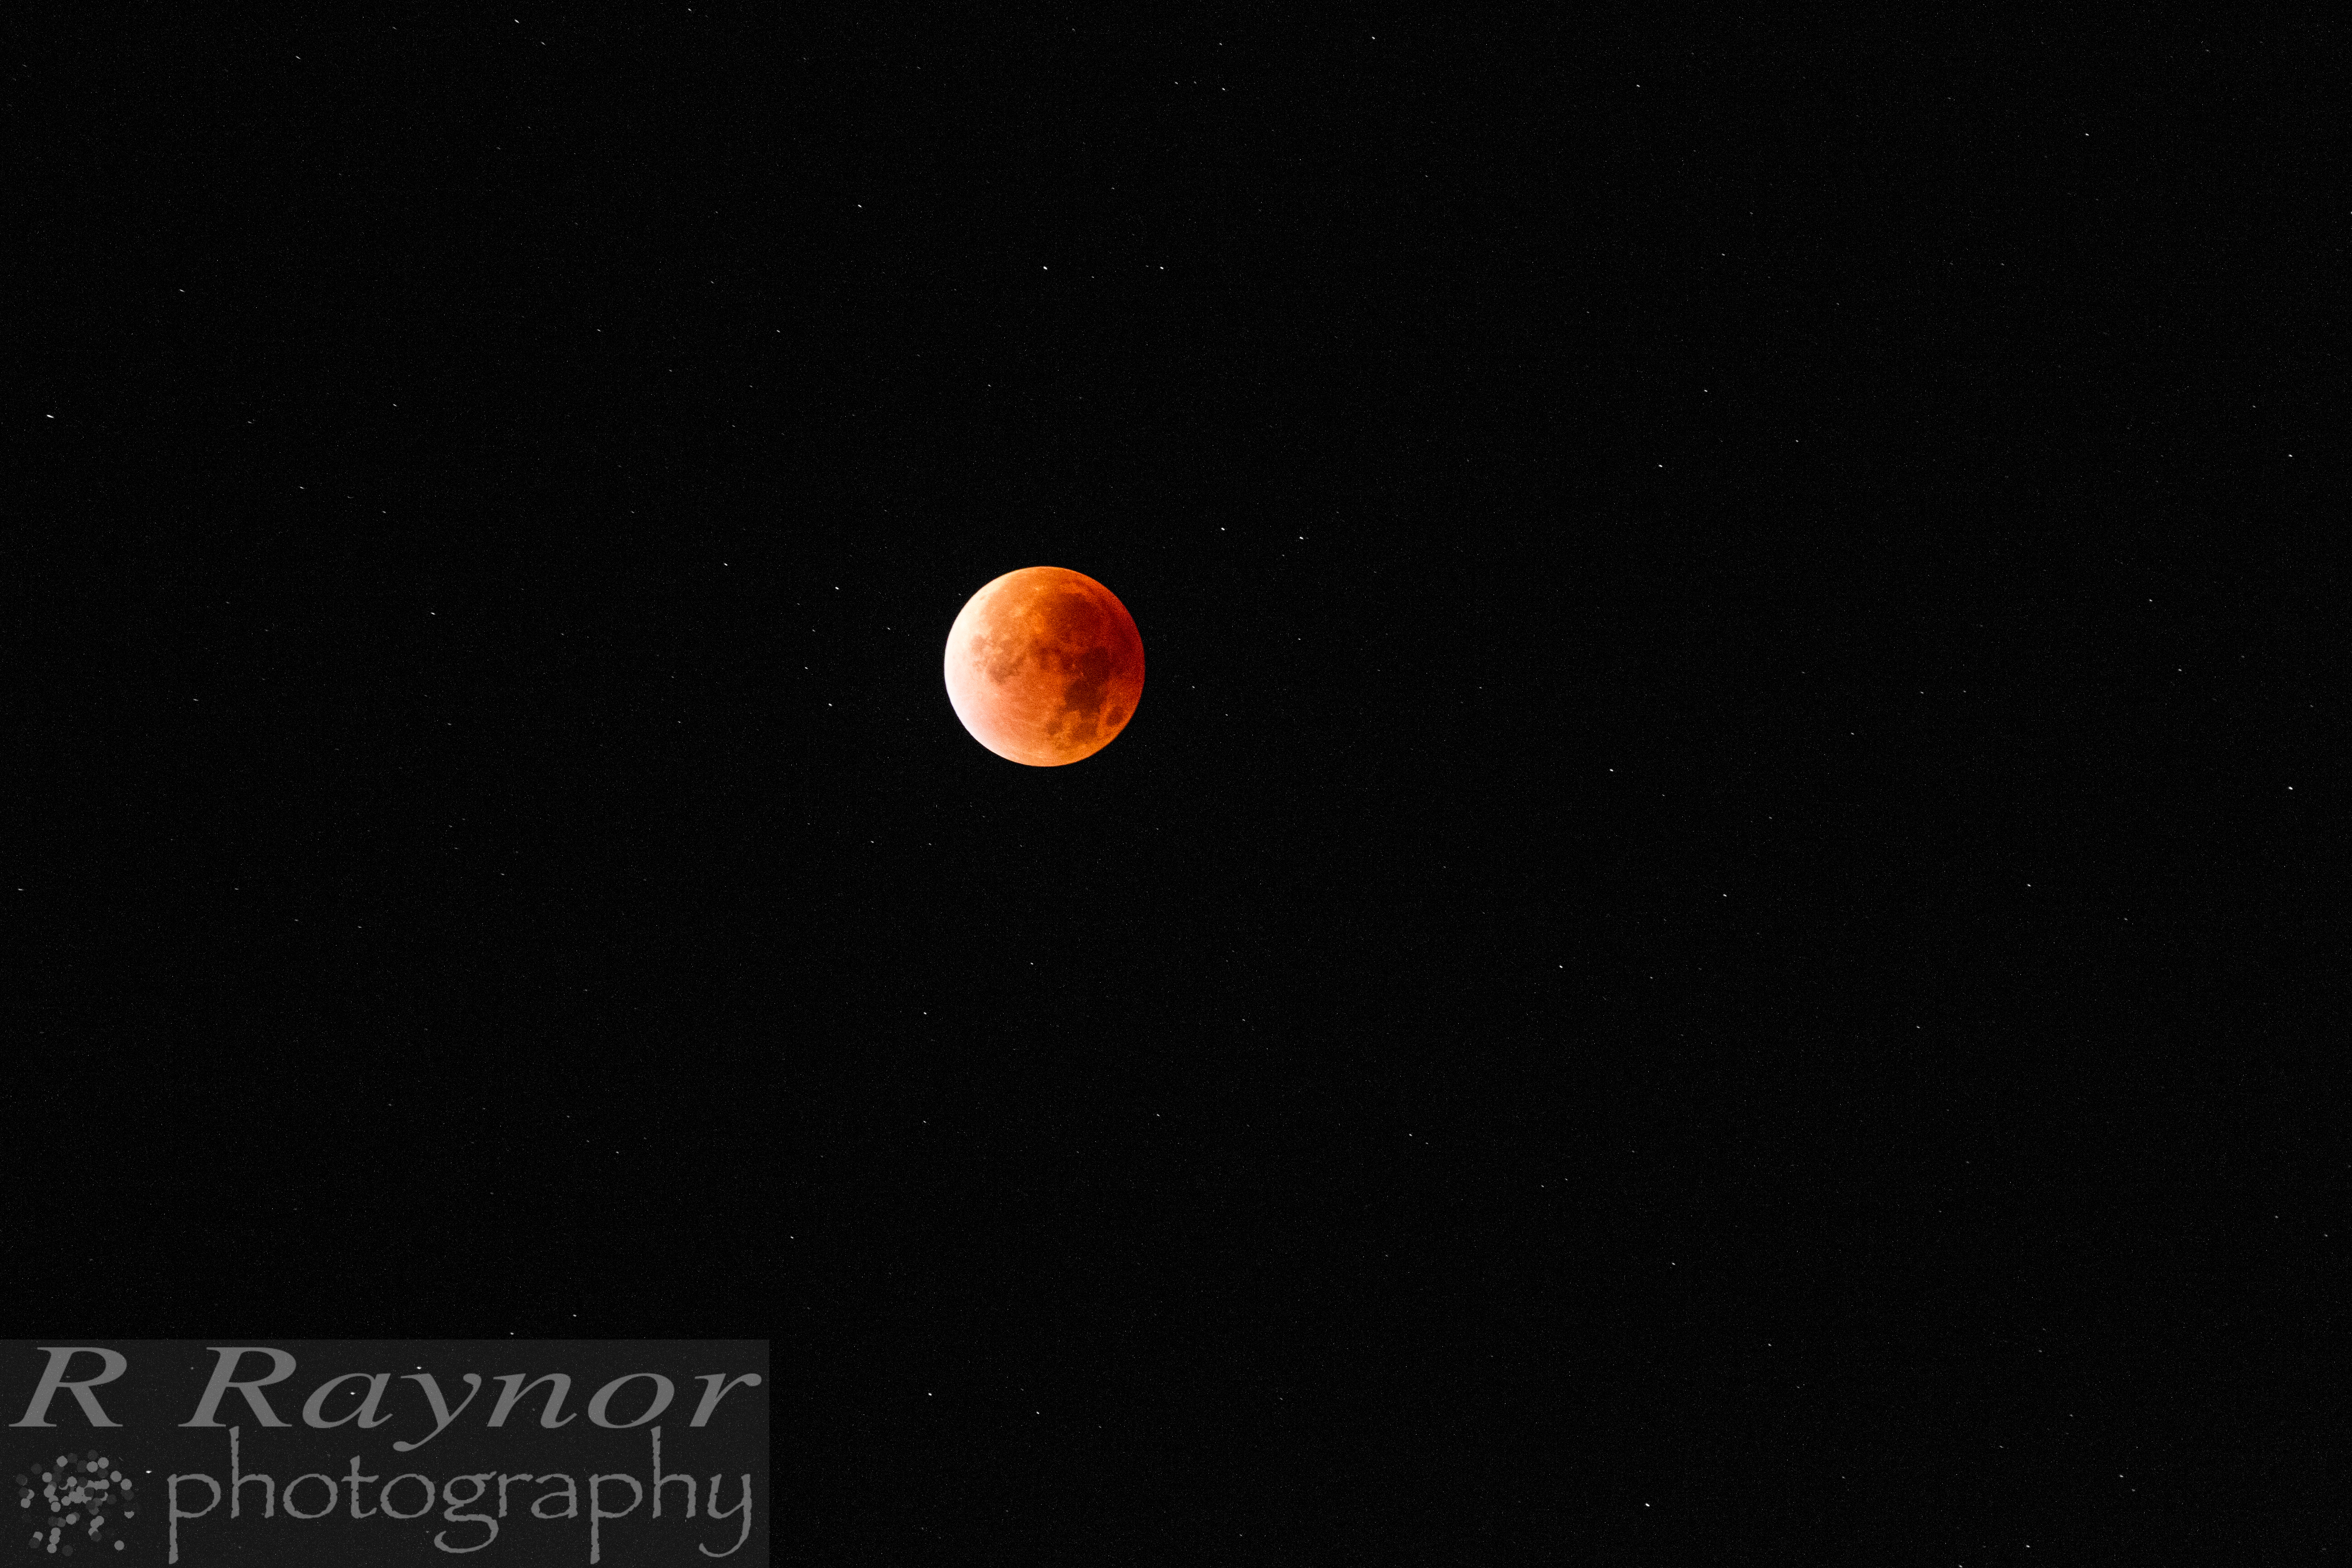 First_20150928_RRaynor0020